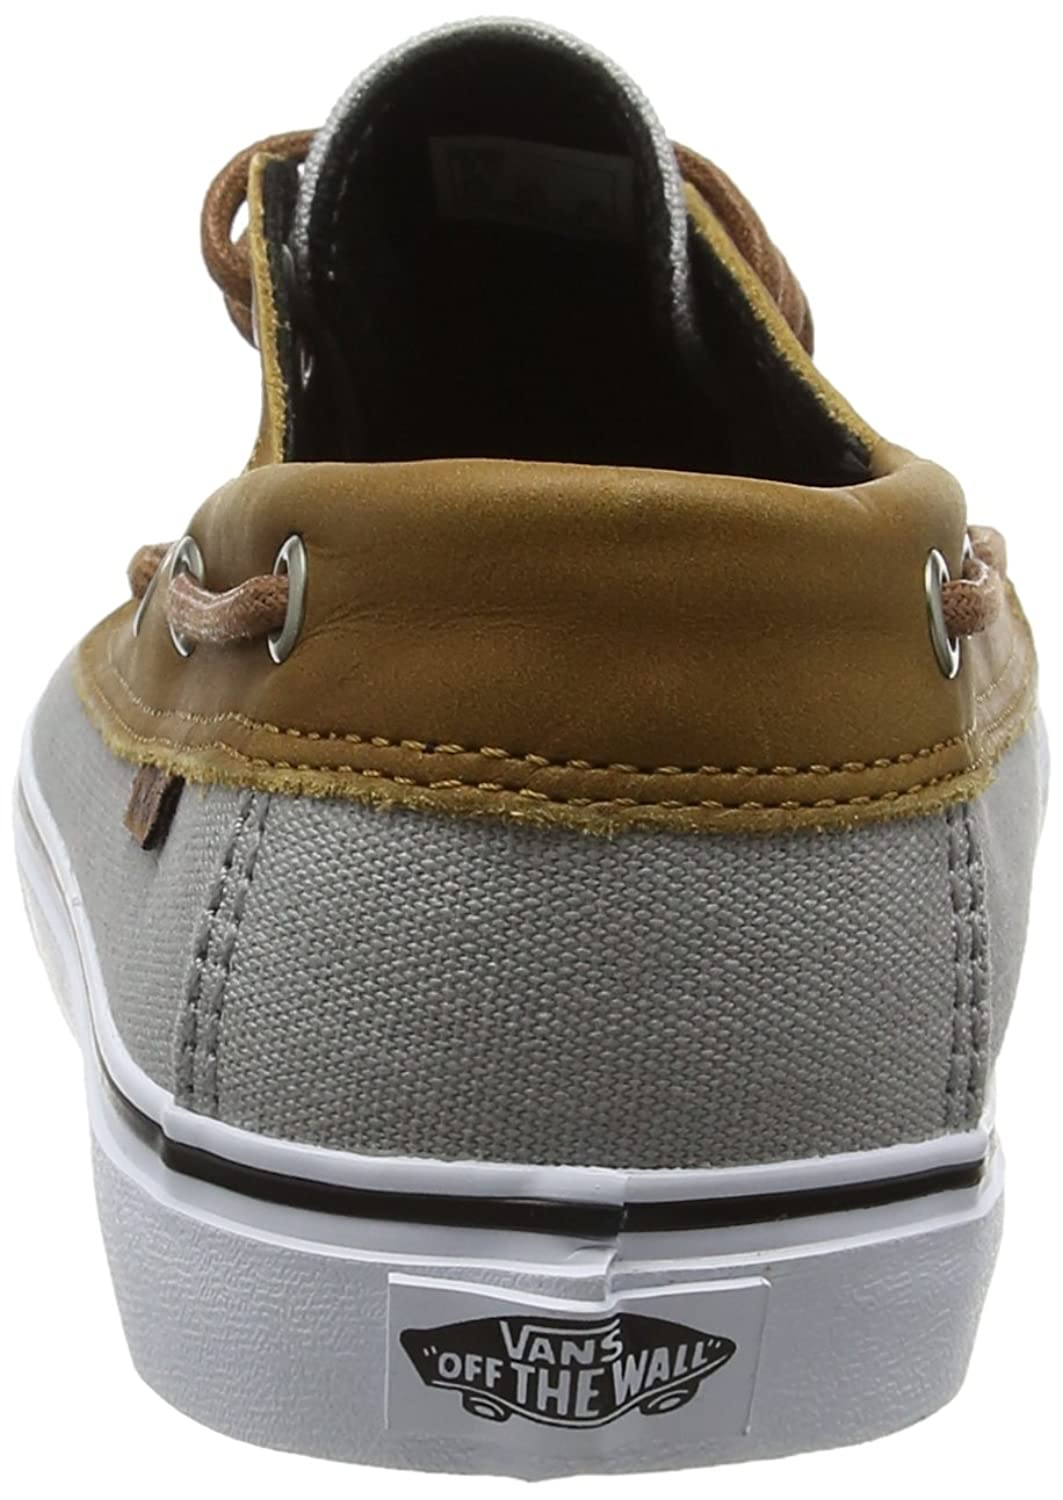 Vans Chauffeur Sf Washed Black Mens Skate Shoes D Island Casual Zappato England Suede Fashion Sneakers